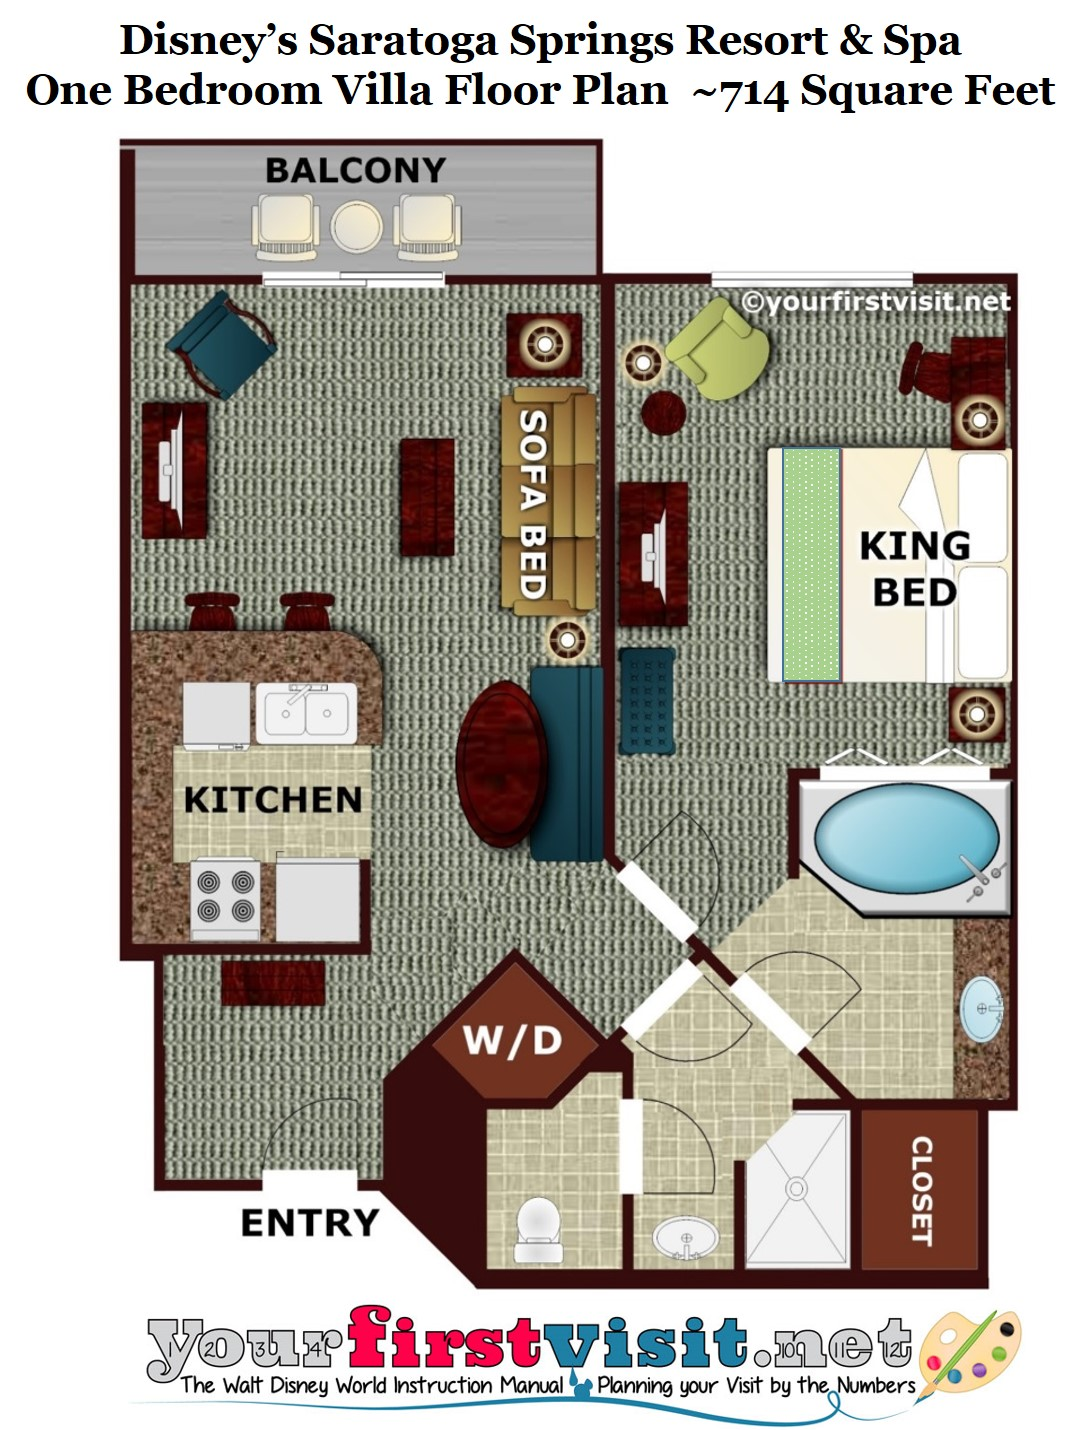 Review disney 39 s saratoga springs resort spa for Villa floor plans